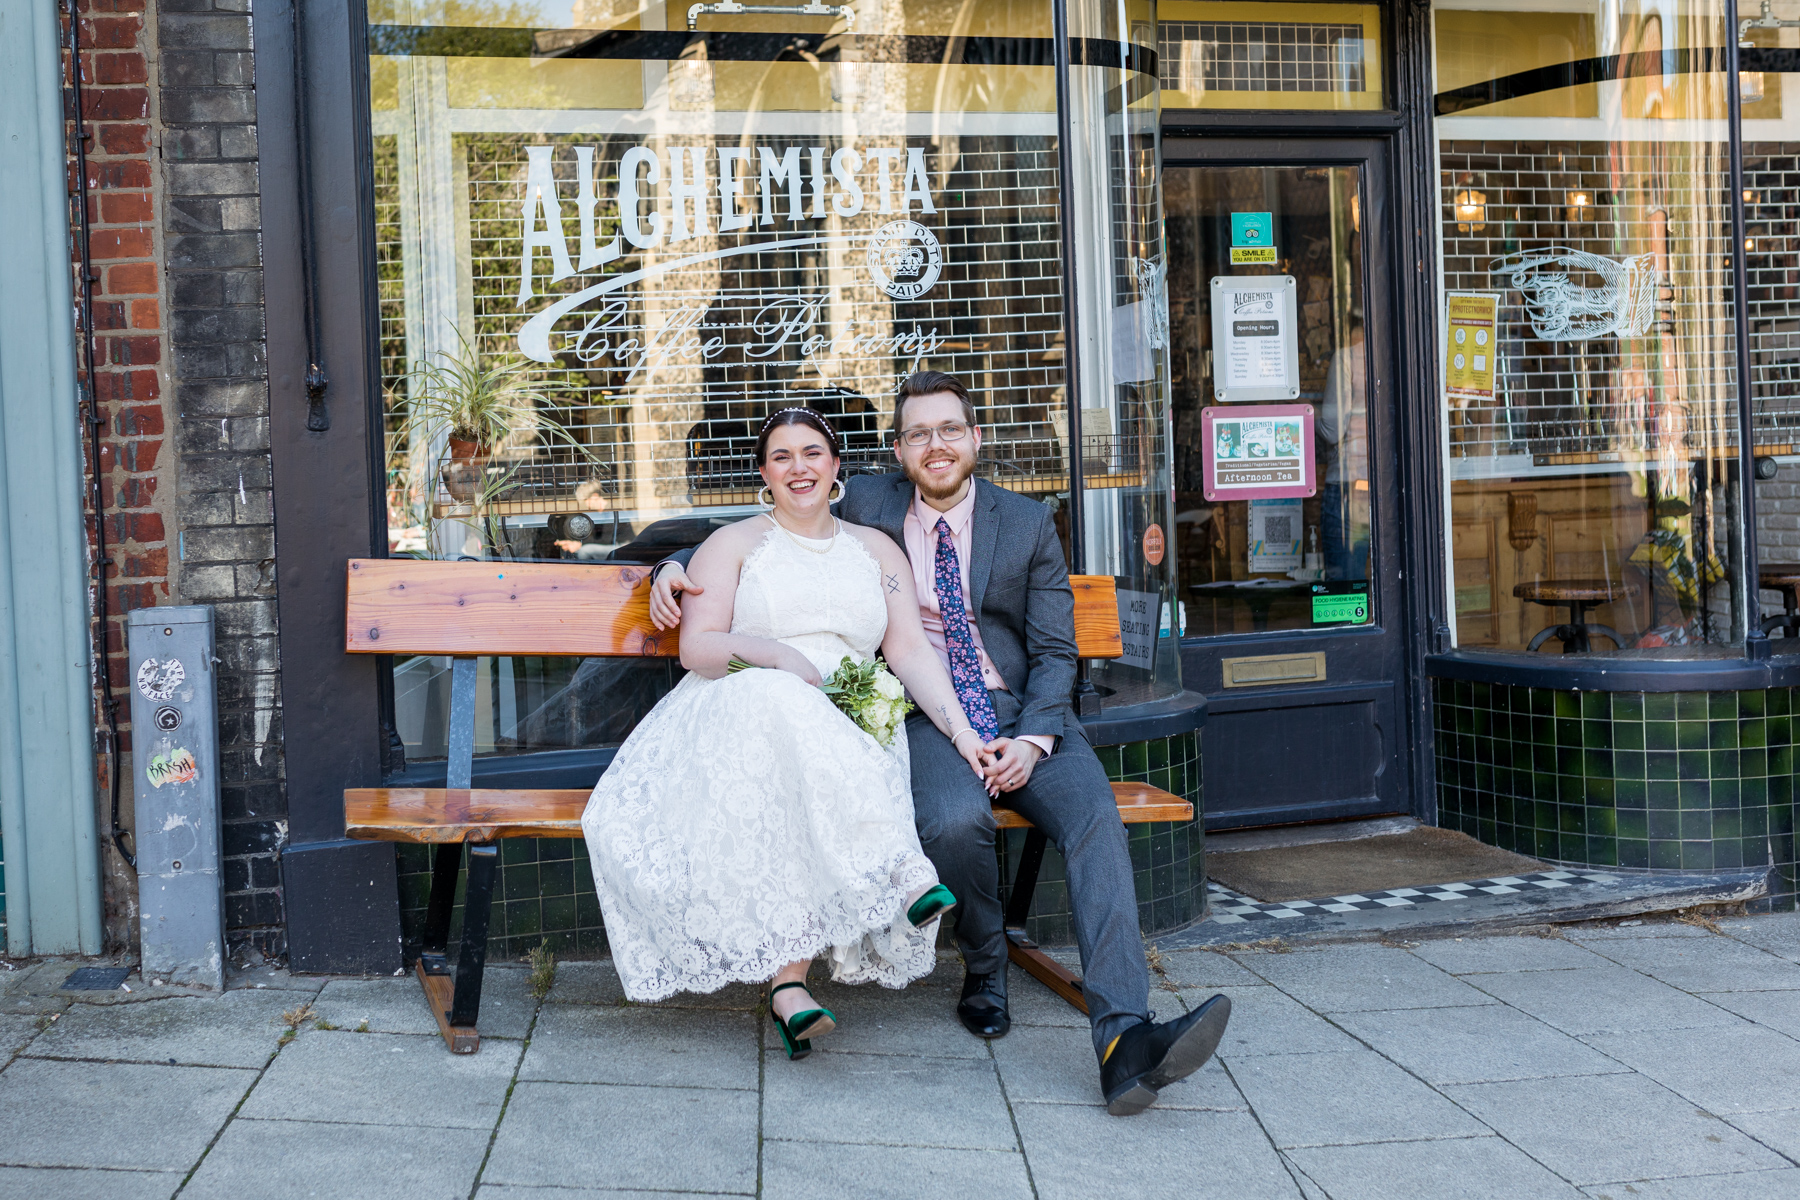 Bride and groom sitting outside cafe